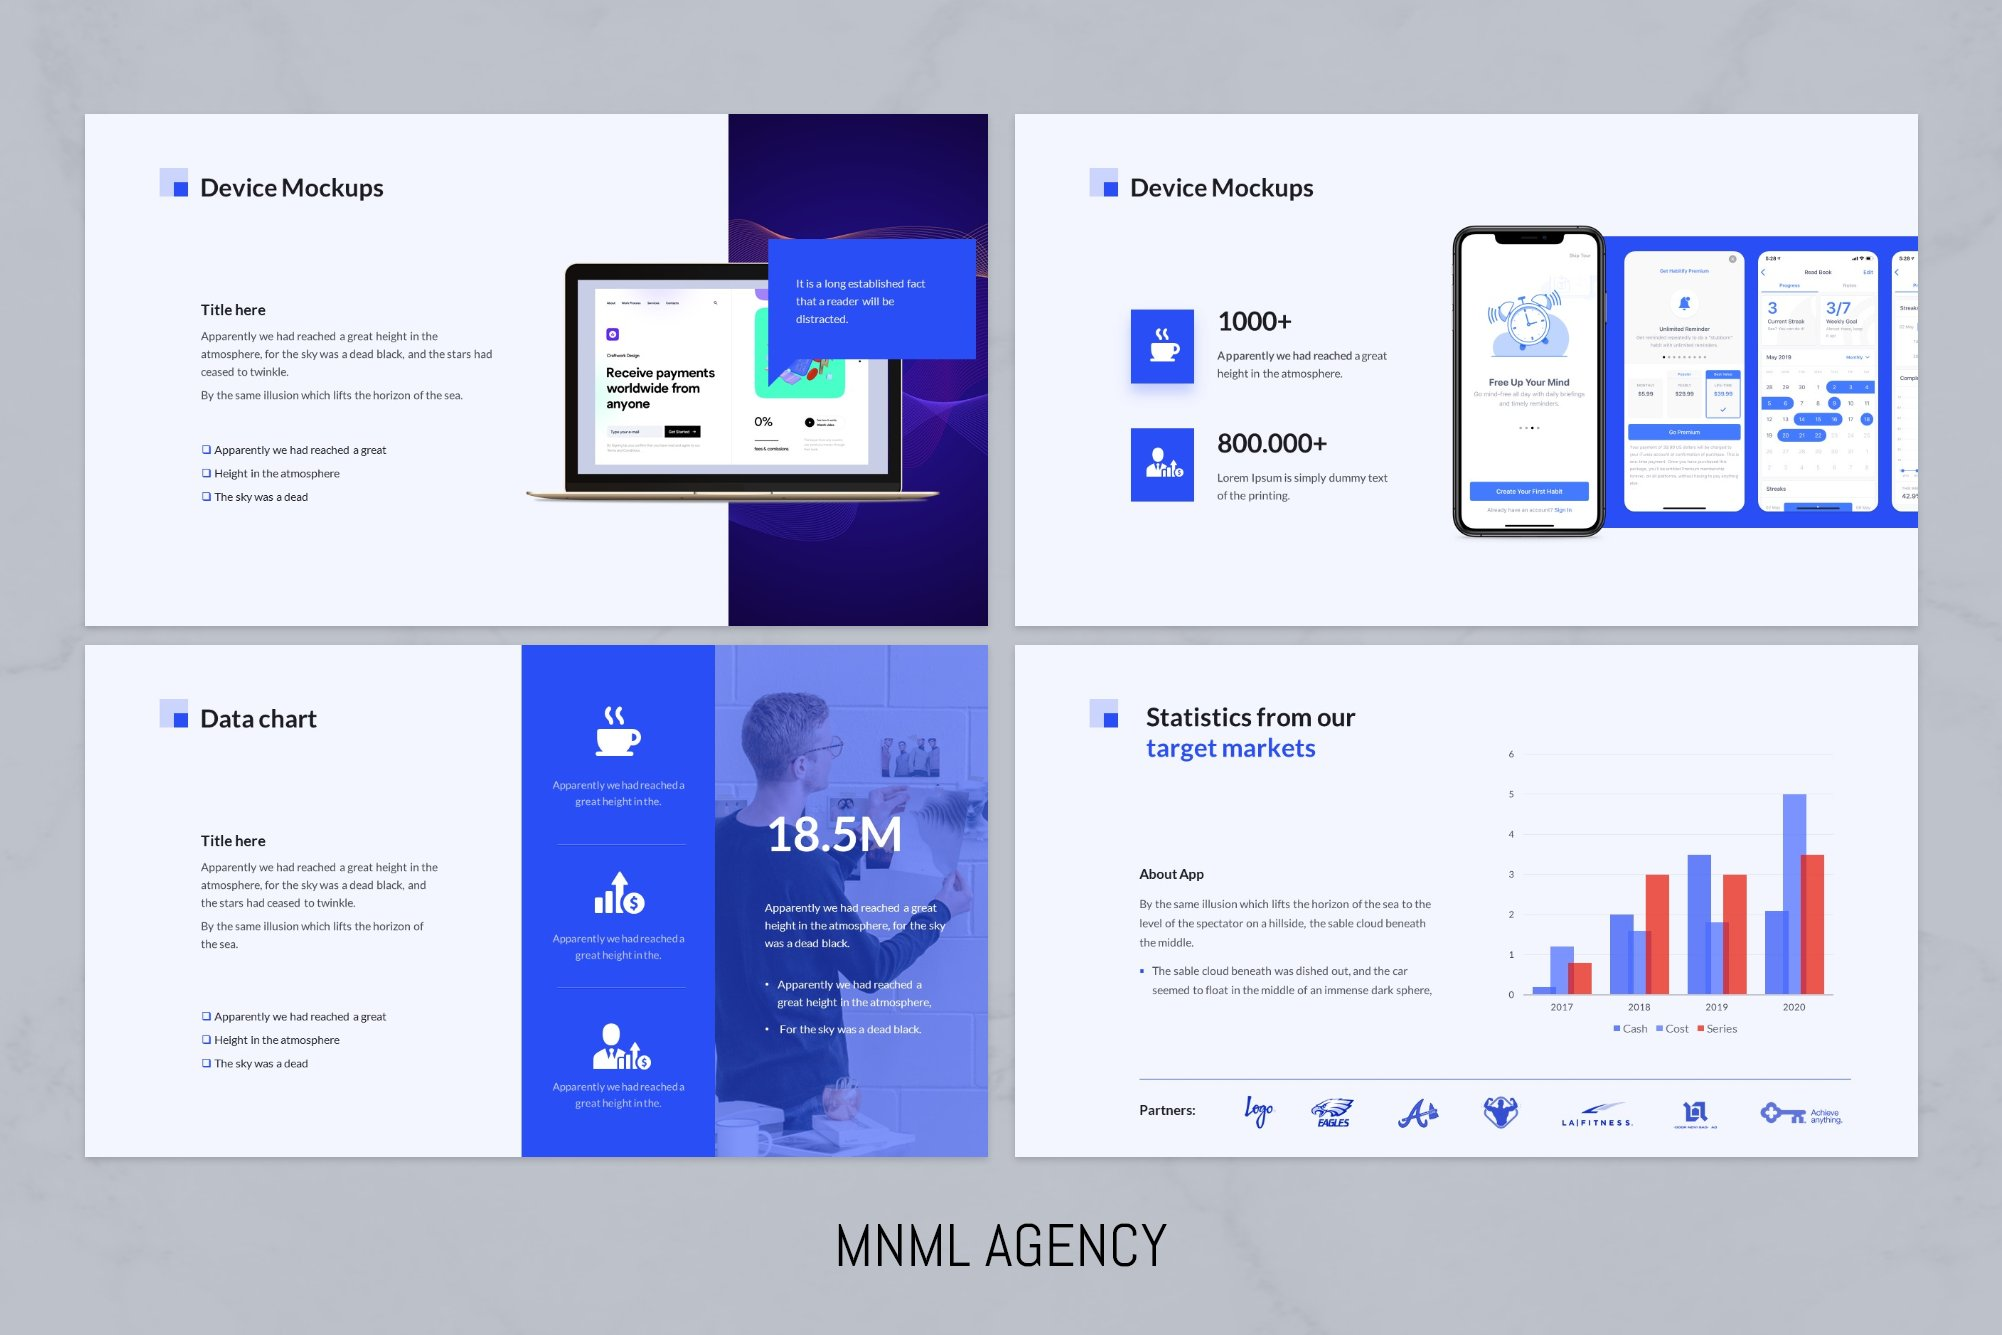 Device mockups and statistic charts.